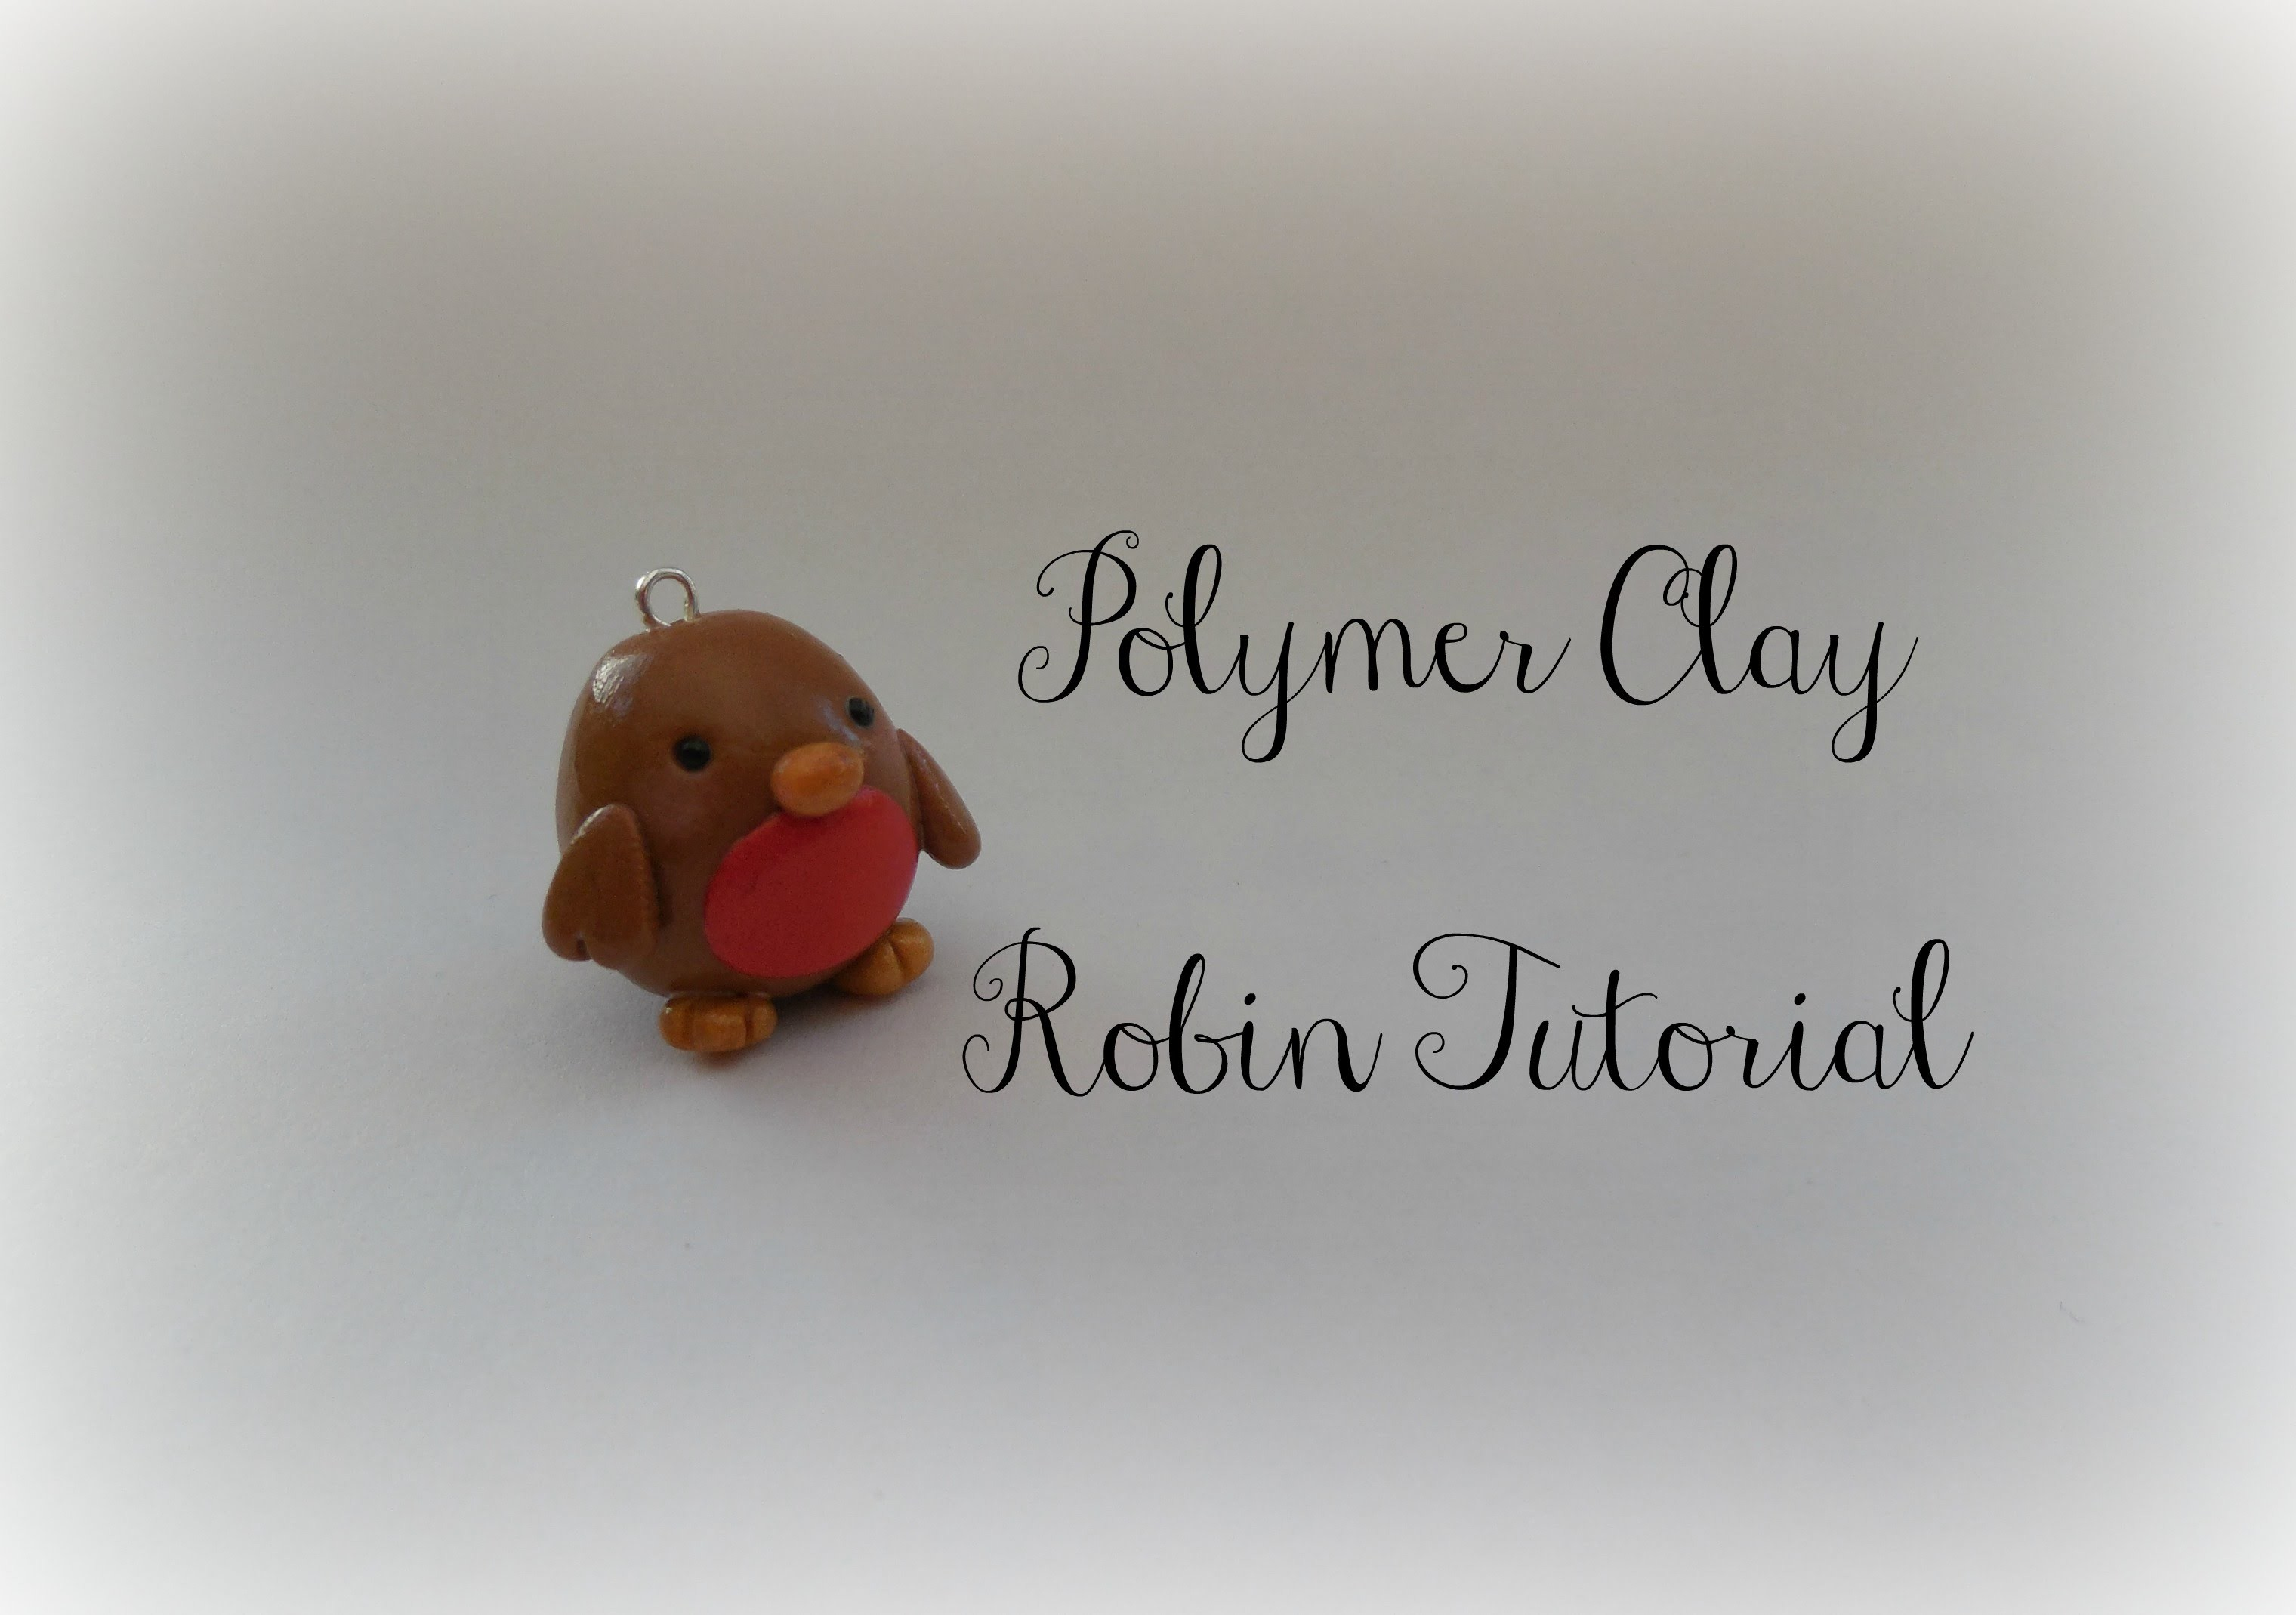 Polymer Clay Chubby Robin Tutorial || Christmas Series